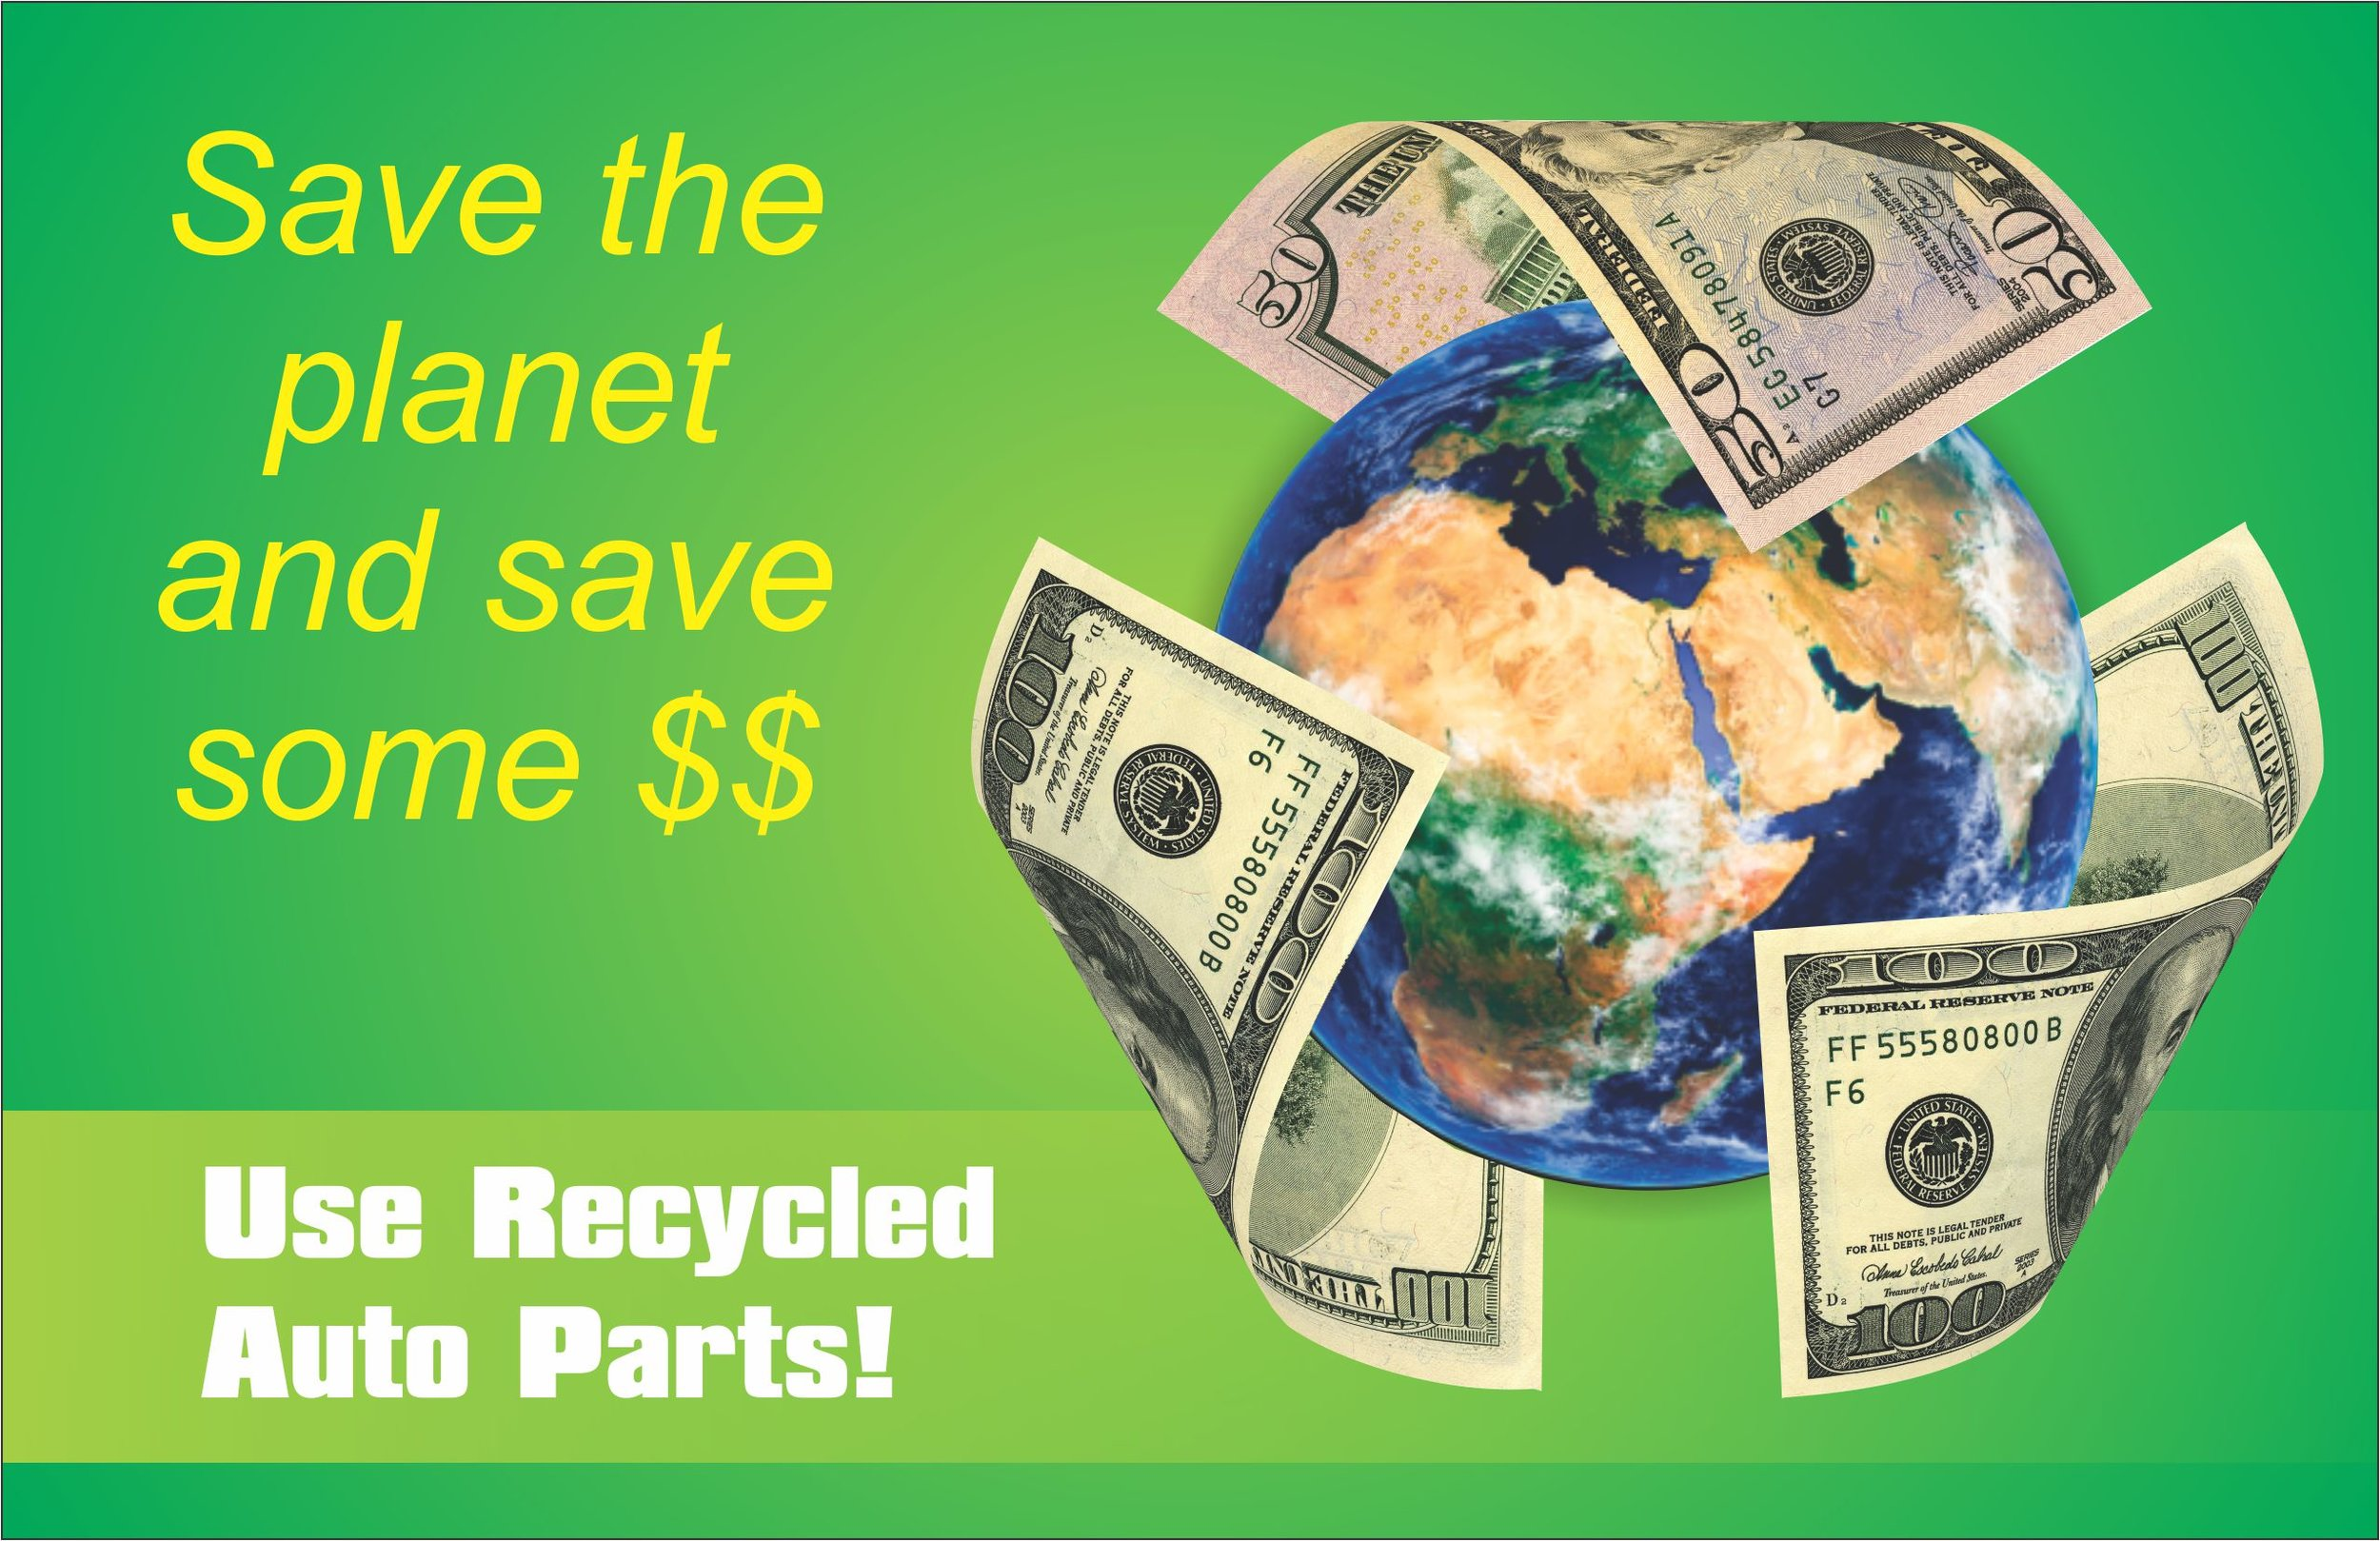 Save the Planet and Save $$.jpg